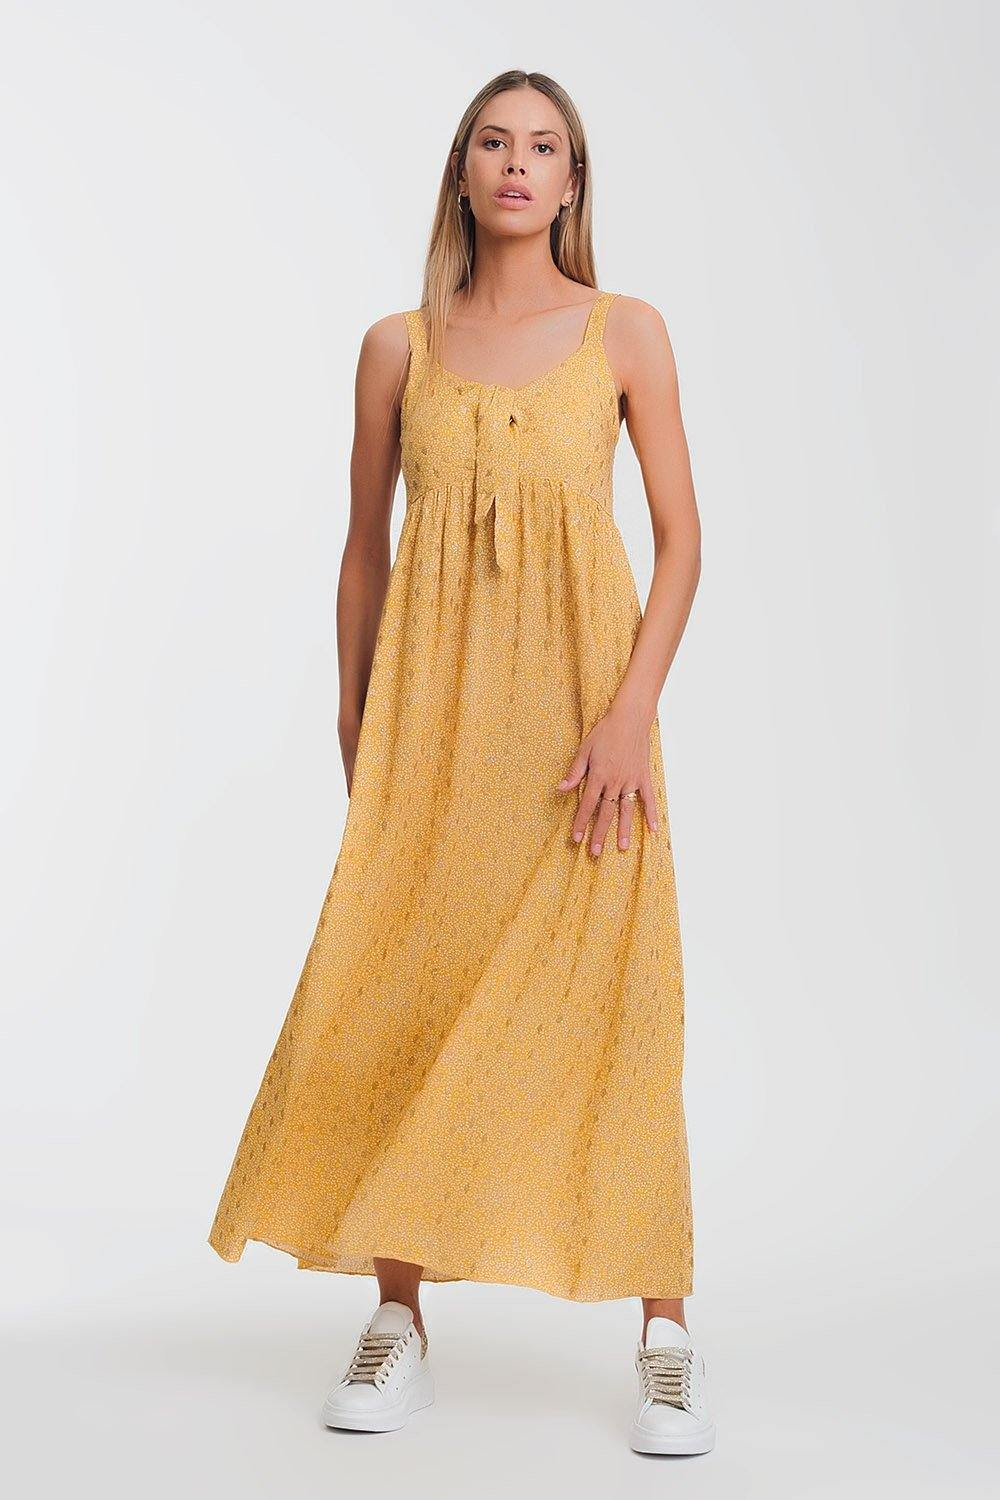 Q2 tie front midi yellow dress in floral print